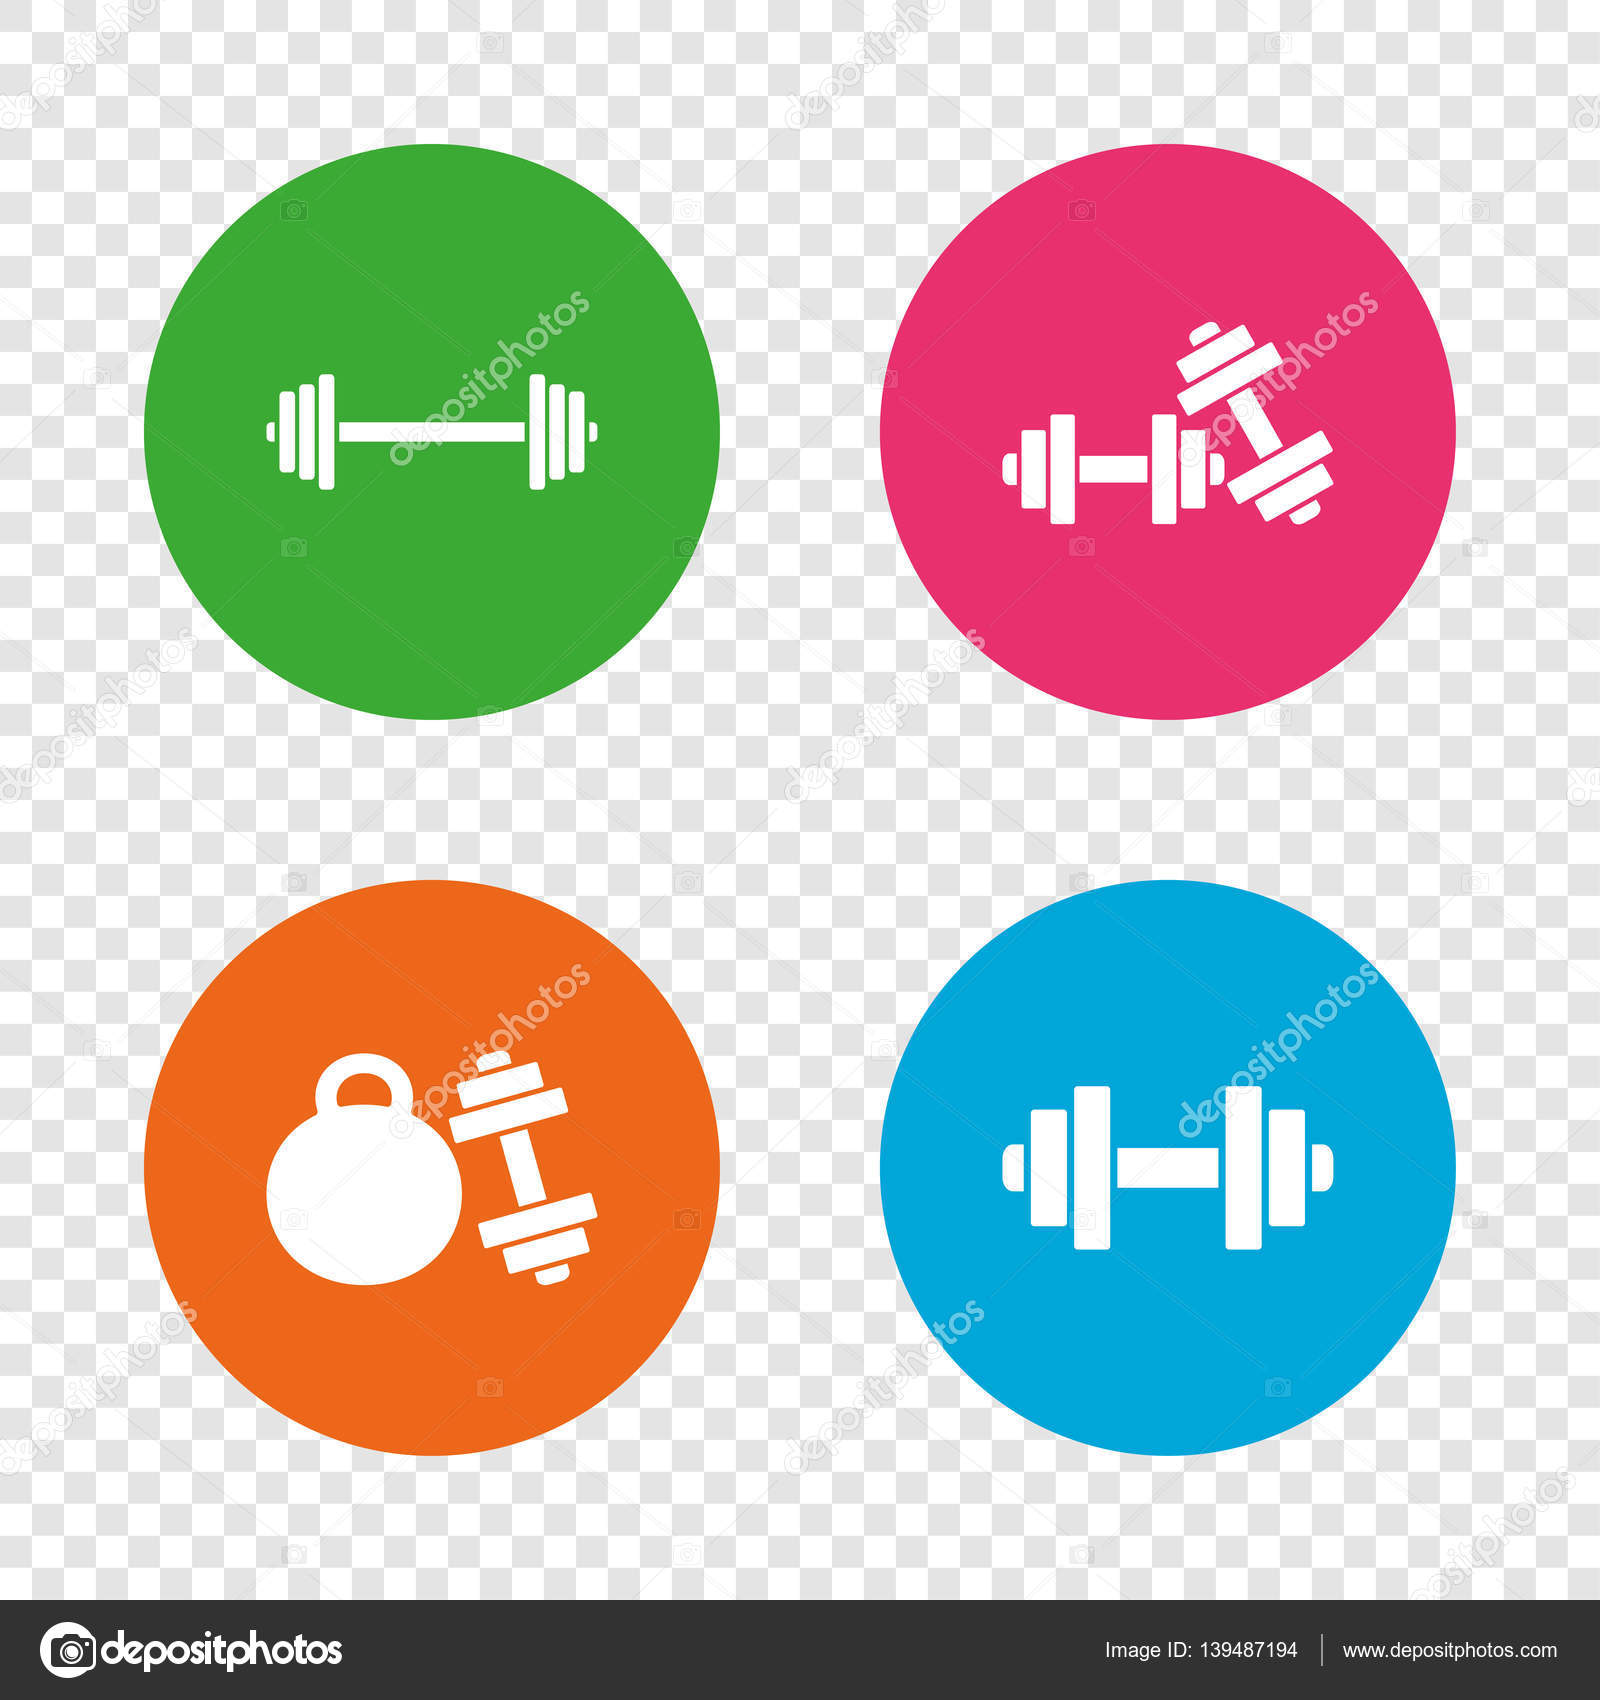 Dumbbells icons fitness sport symbols stock vector dumbbells sign icons fitness sport symbols gym workout equipment round buttons on transparent background vector vector by blankstock biocorpaavc